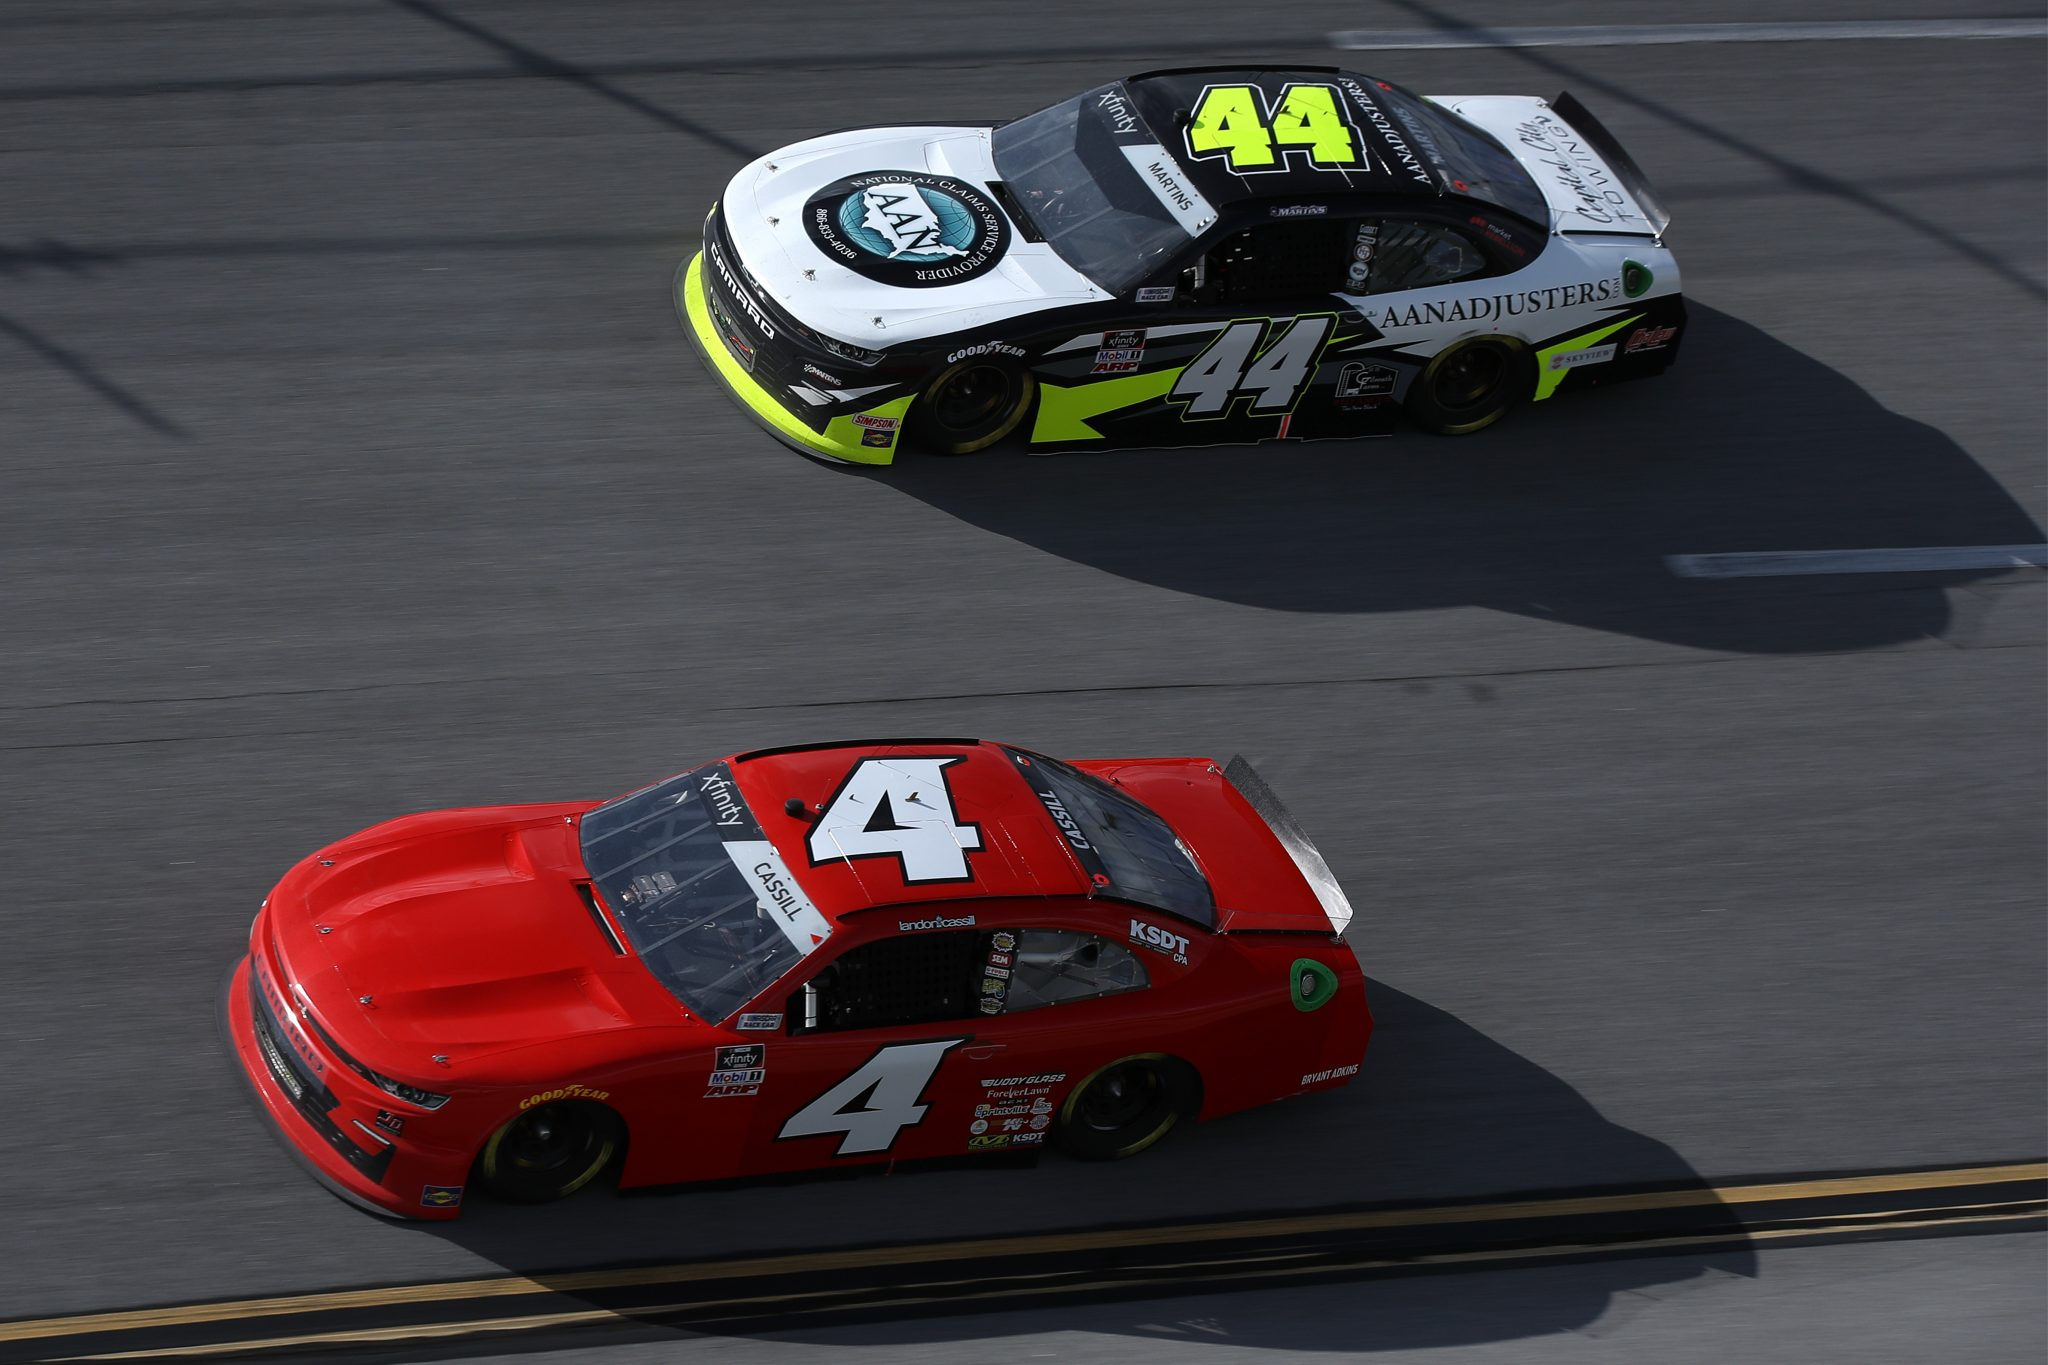 TALLADEGA, ALABAMA - APRIL 24: Landon Cassill, driver of the #4 TeamJDMotorsports.com Chevrolet, and Tommy Joe Martins, driver of the #44 AAN Adjusters Chevrolet, race during the NASCAR Xfinity Series Ag-Pro 300 at Talladega Superspeedway on April 24, 2021 in Talladega, Alabama. (Photo by Sean Gardner/Getty Images)   Getty Images